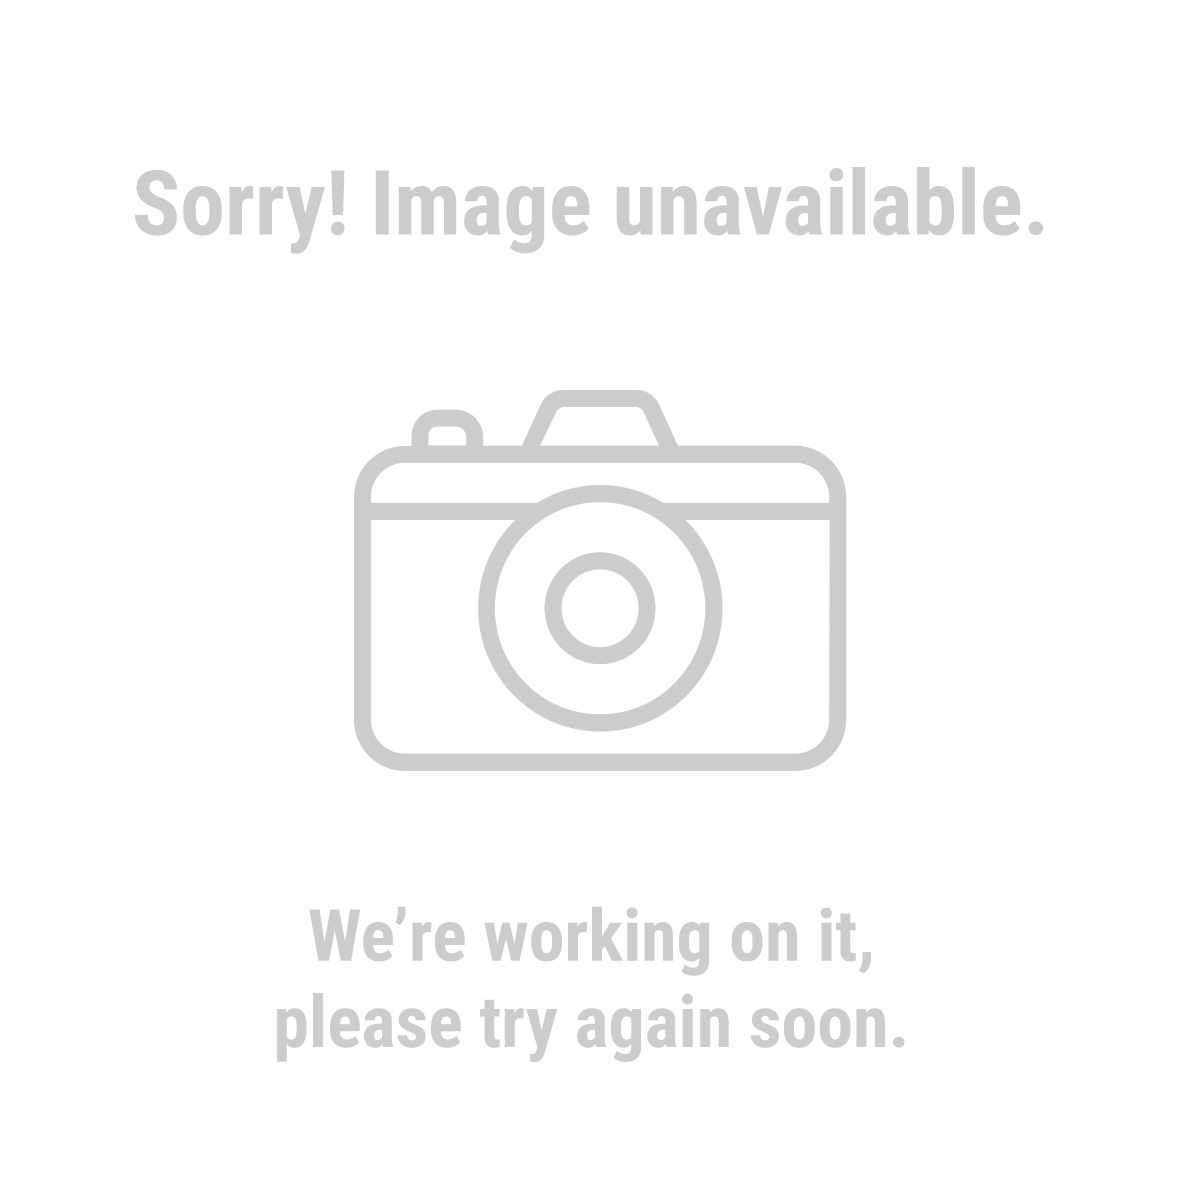 Voyager® 47635 Oil Tanned Leather Tool Pouch